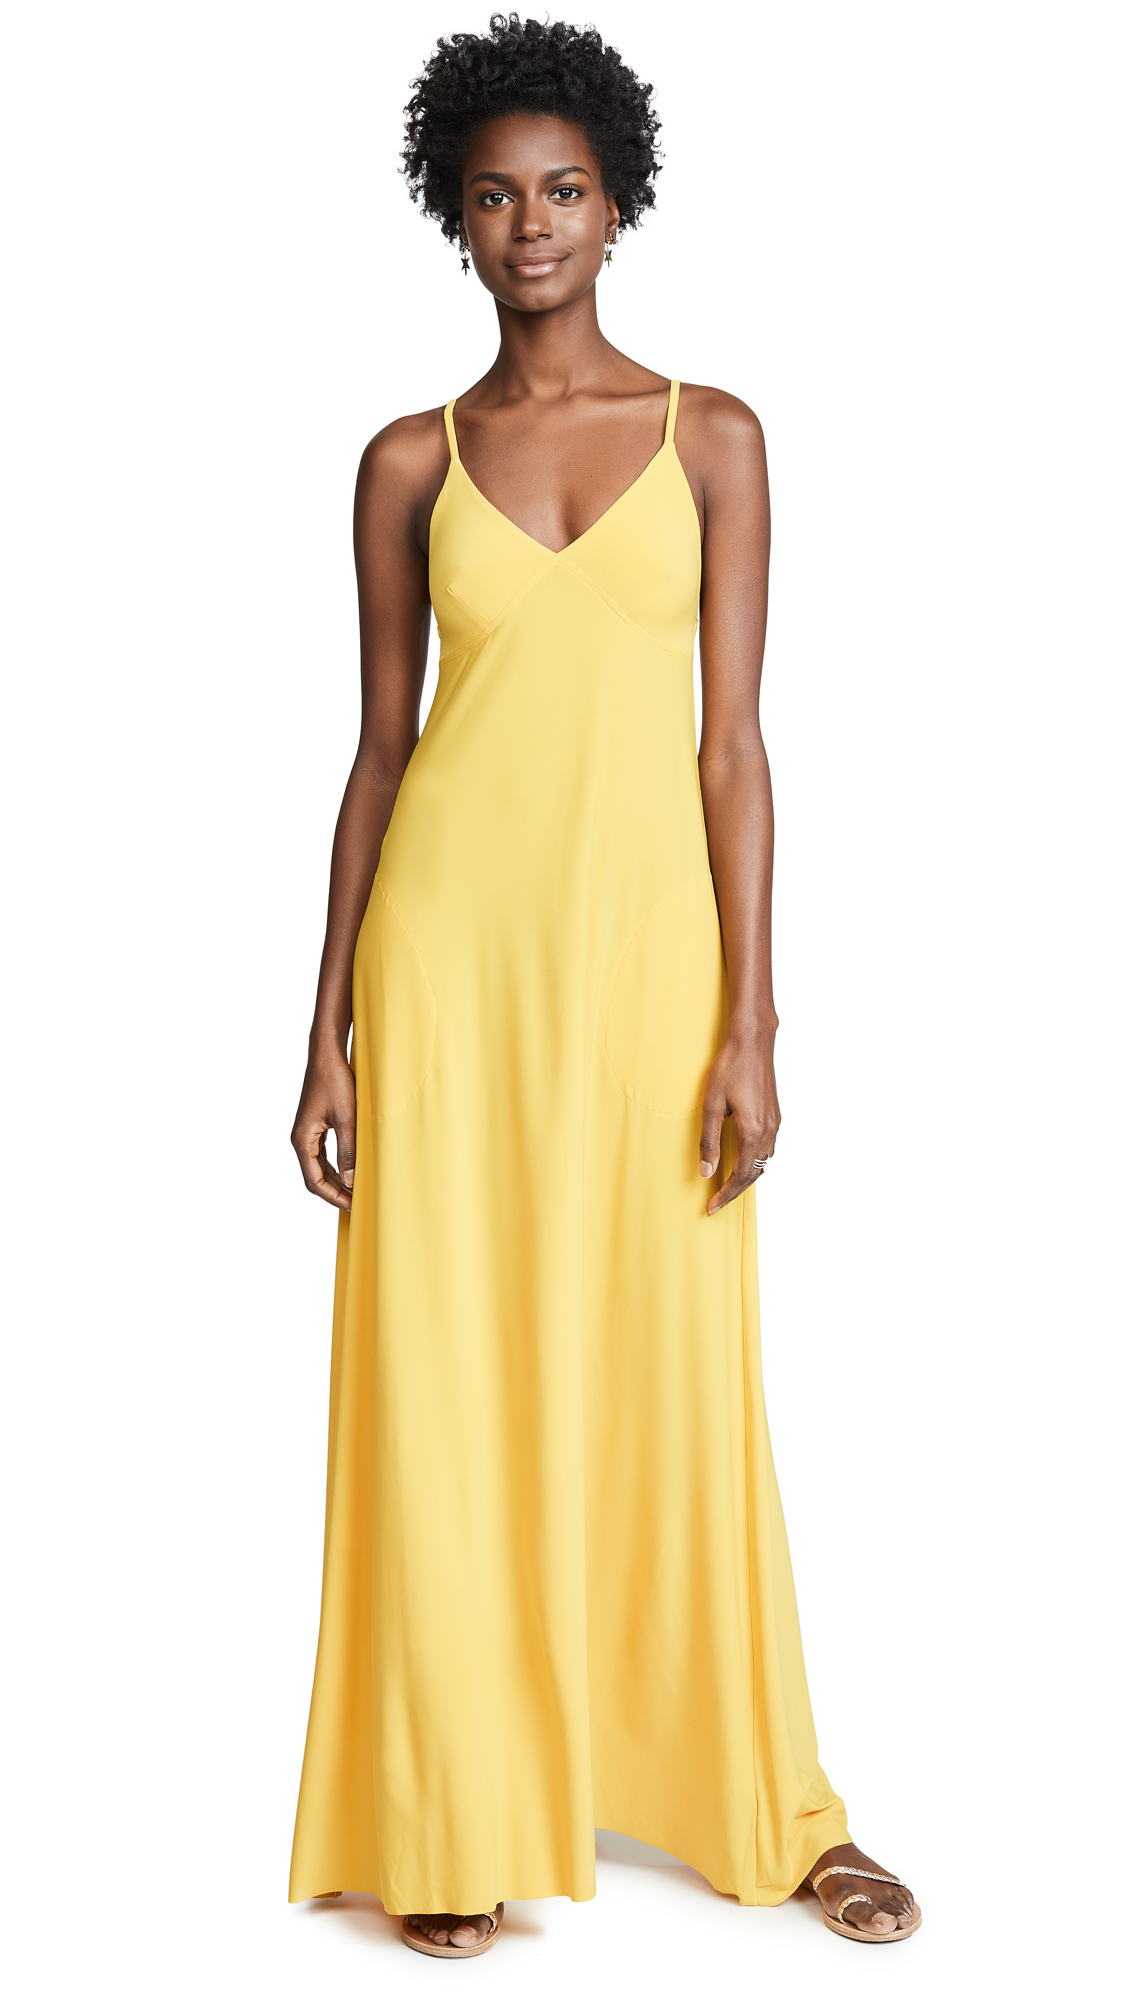 Norma Kamali A-Line Slip Dress - Gold